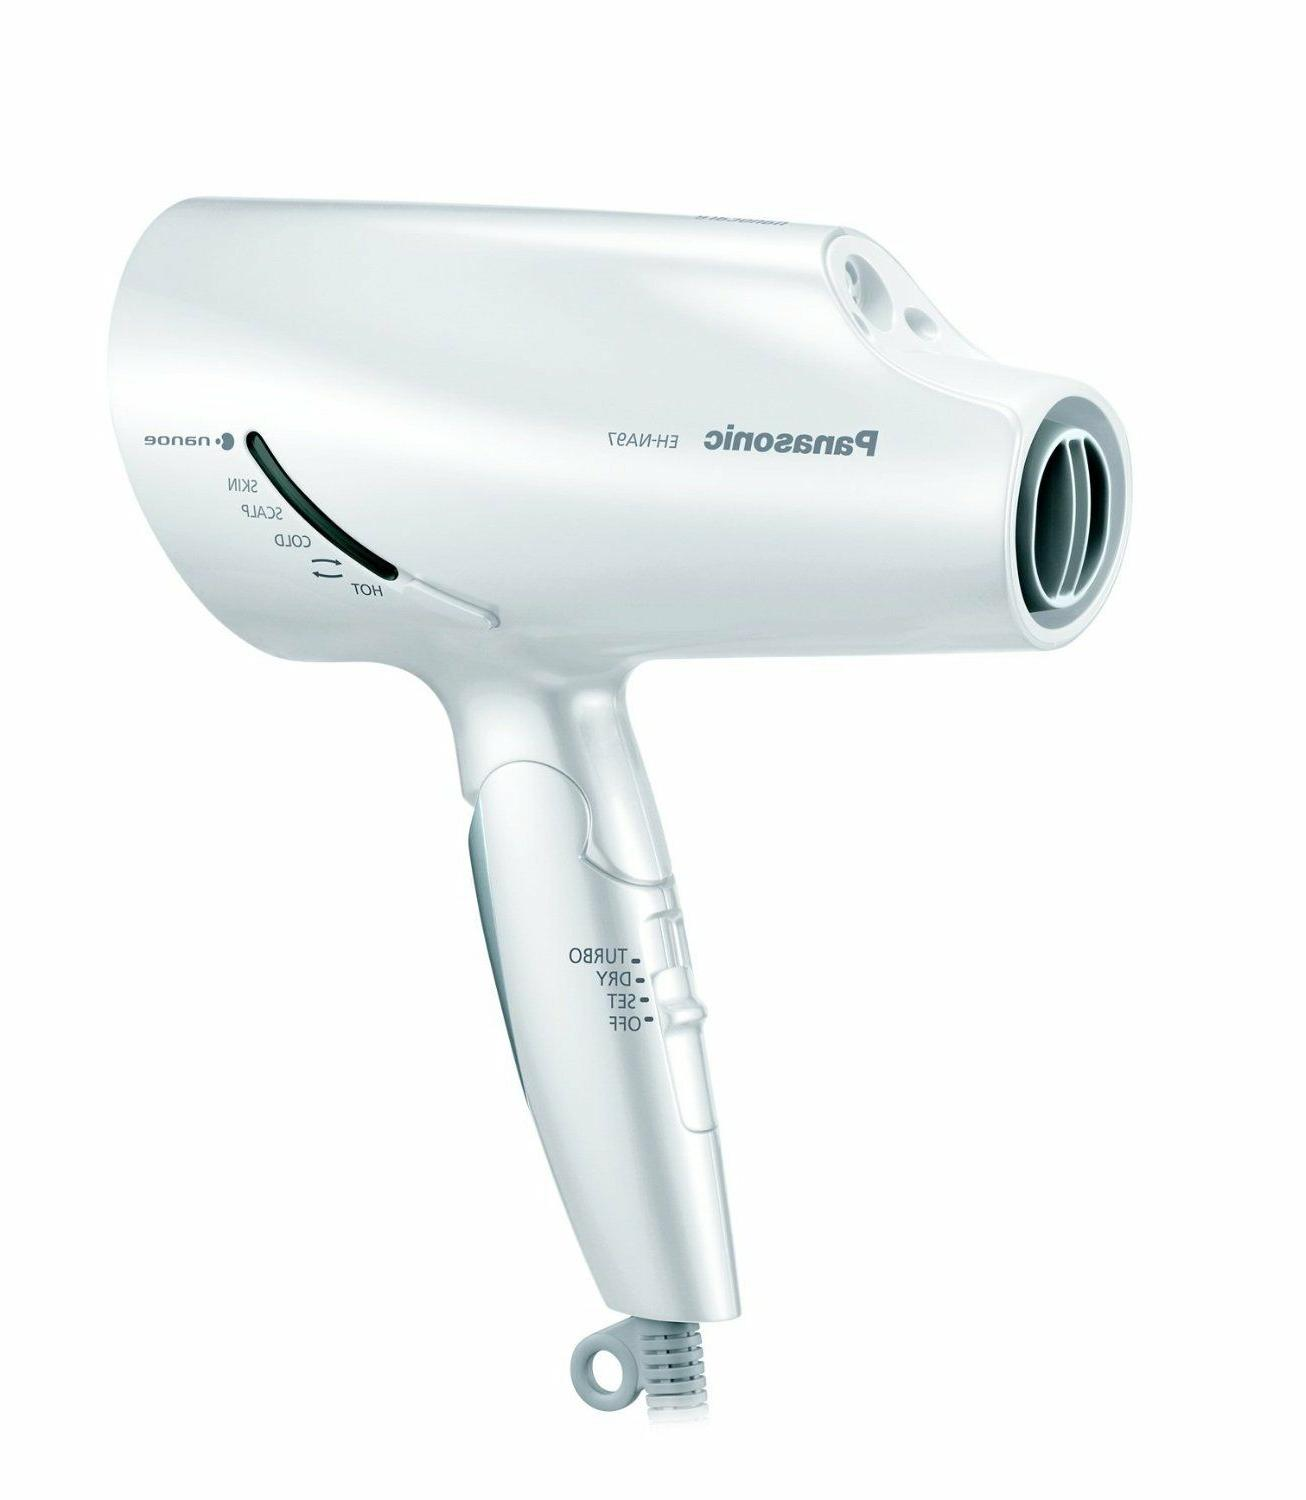 Panasonic CARE Intelligent Ionic Hair Dryer AC100V EH-NA97 3